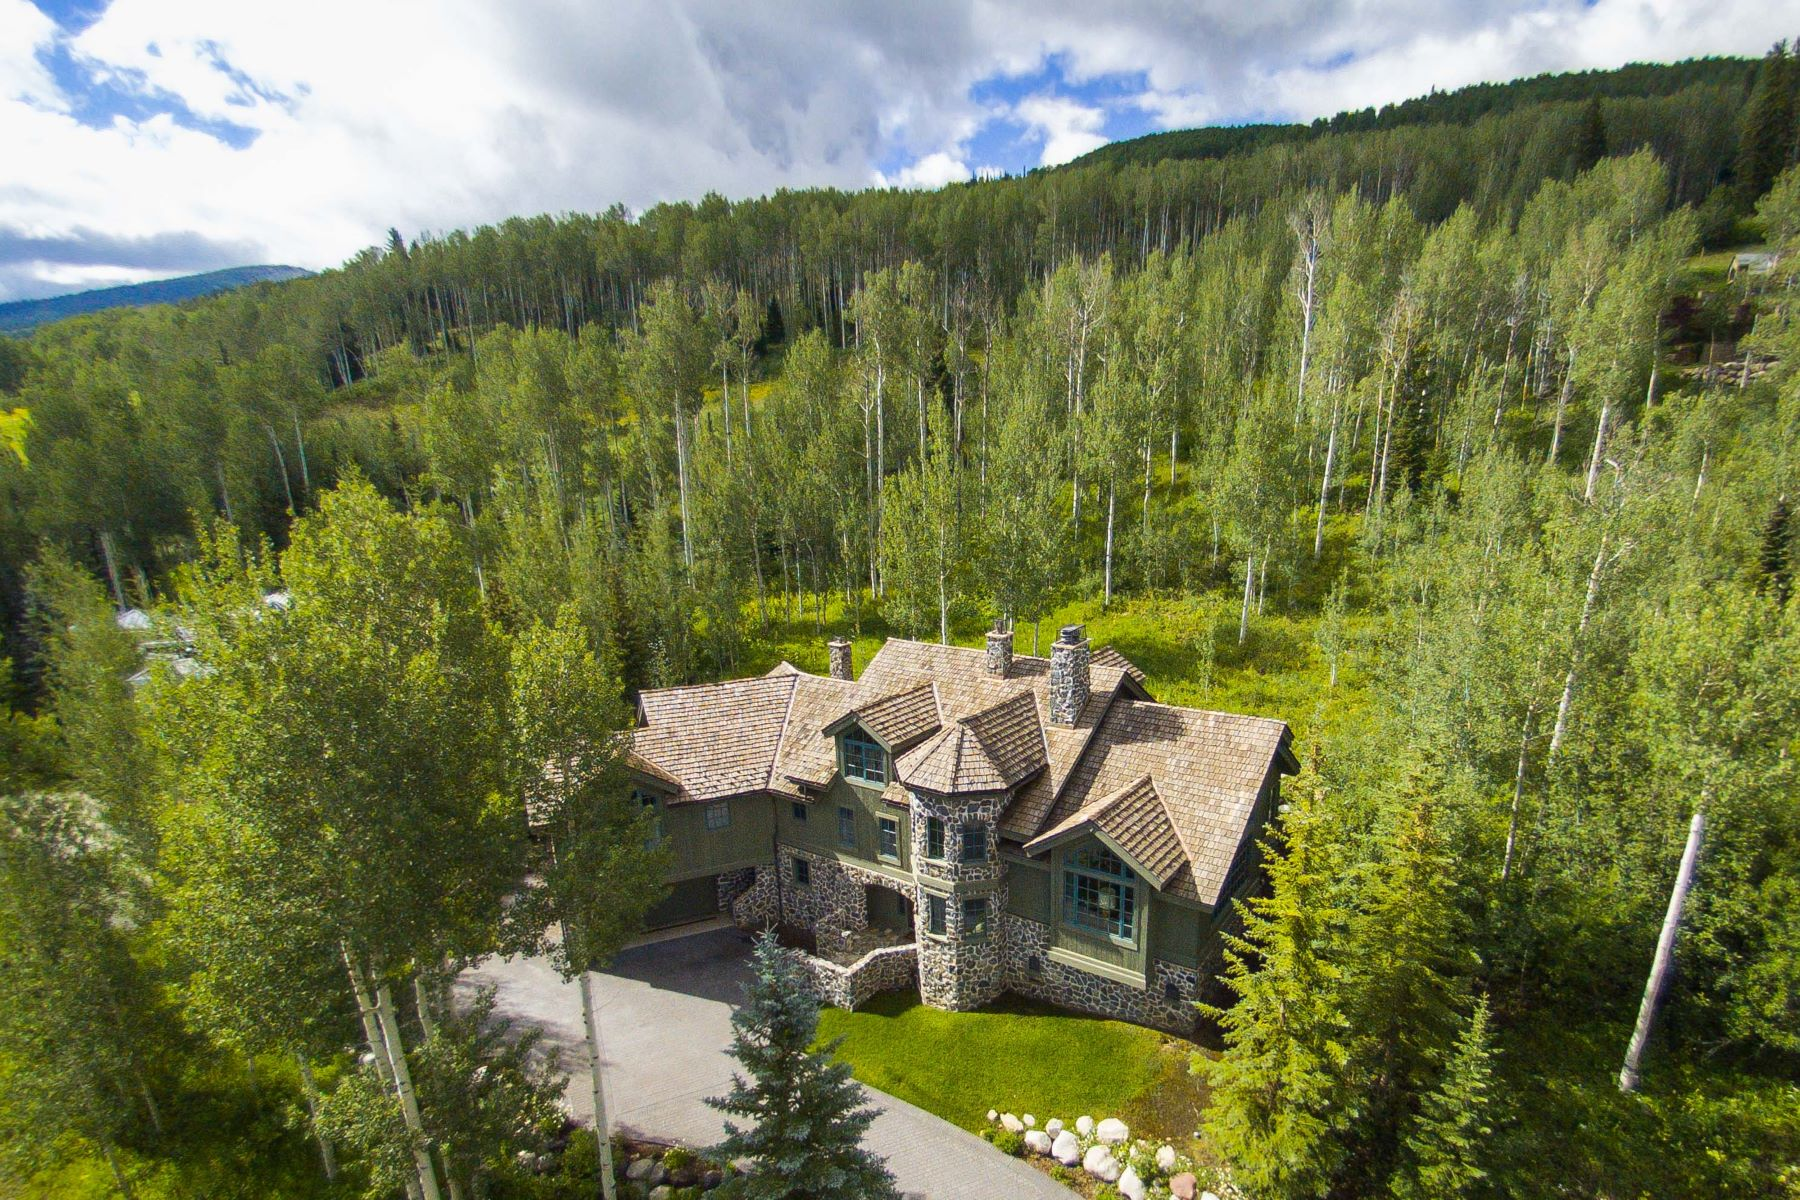 Casa Unifamiliar por un Venta en Great Location on Snowmass Mountain! 143 Aspen Way Snowmass Village, Colorado, 81615 Estados Unidos